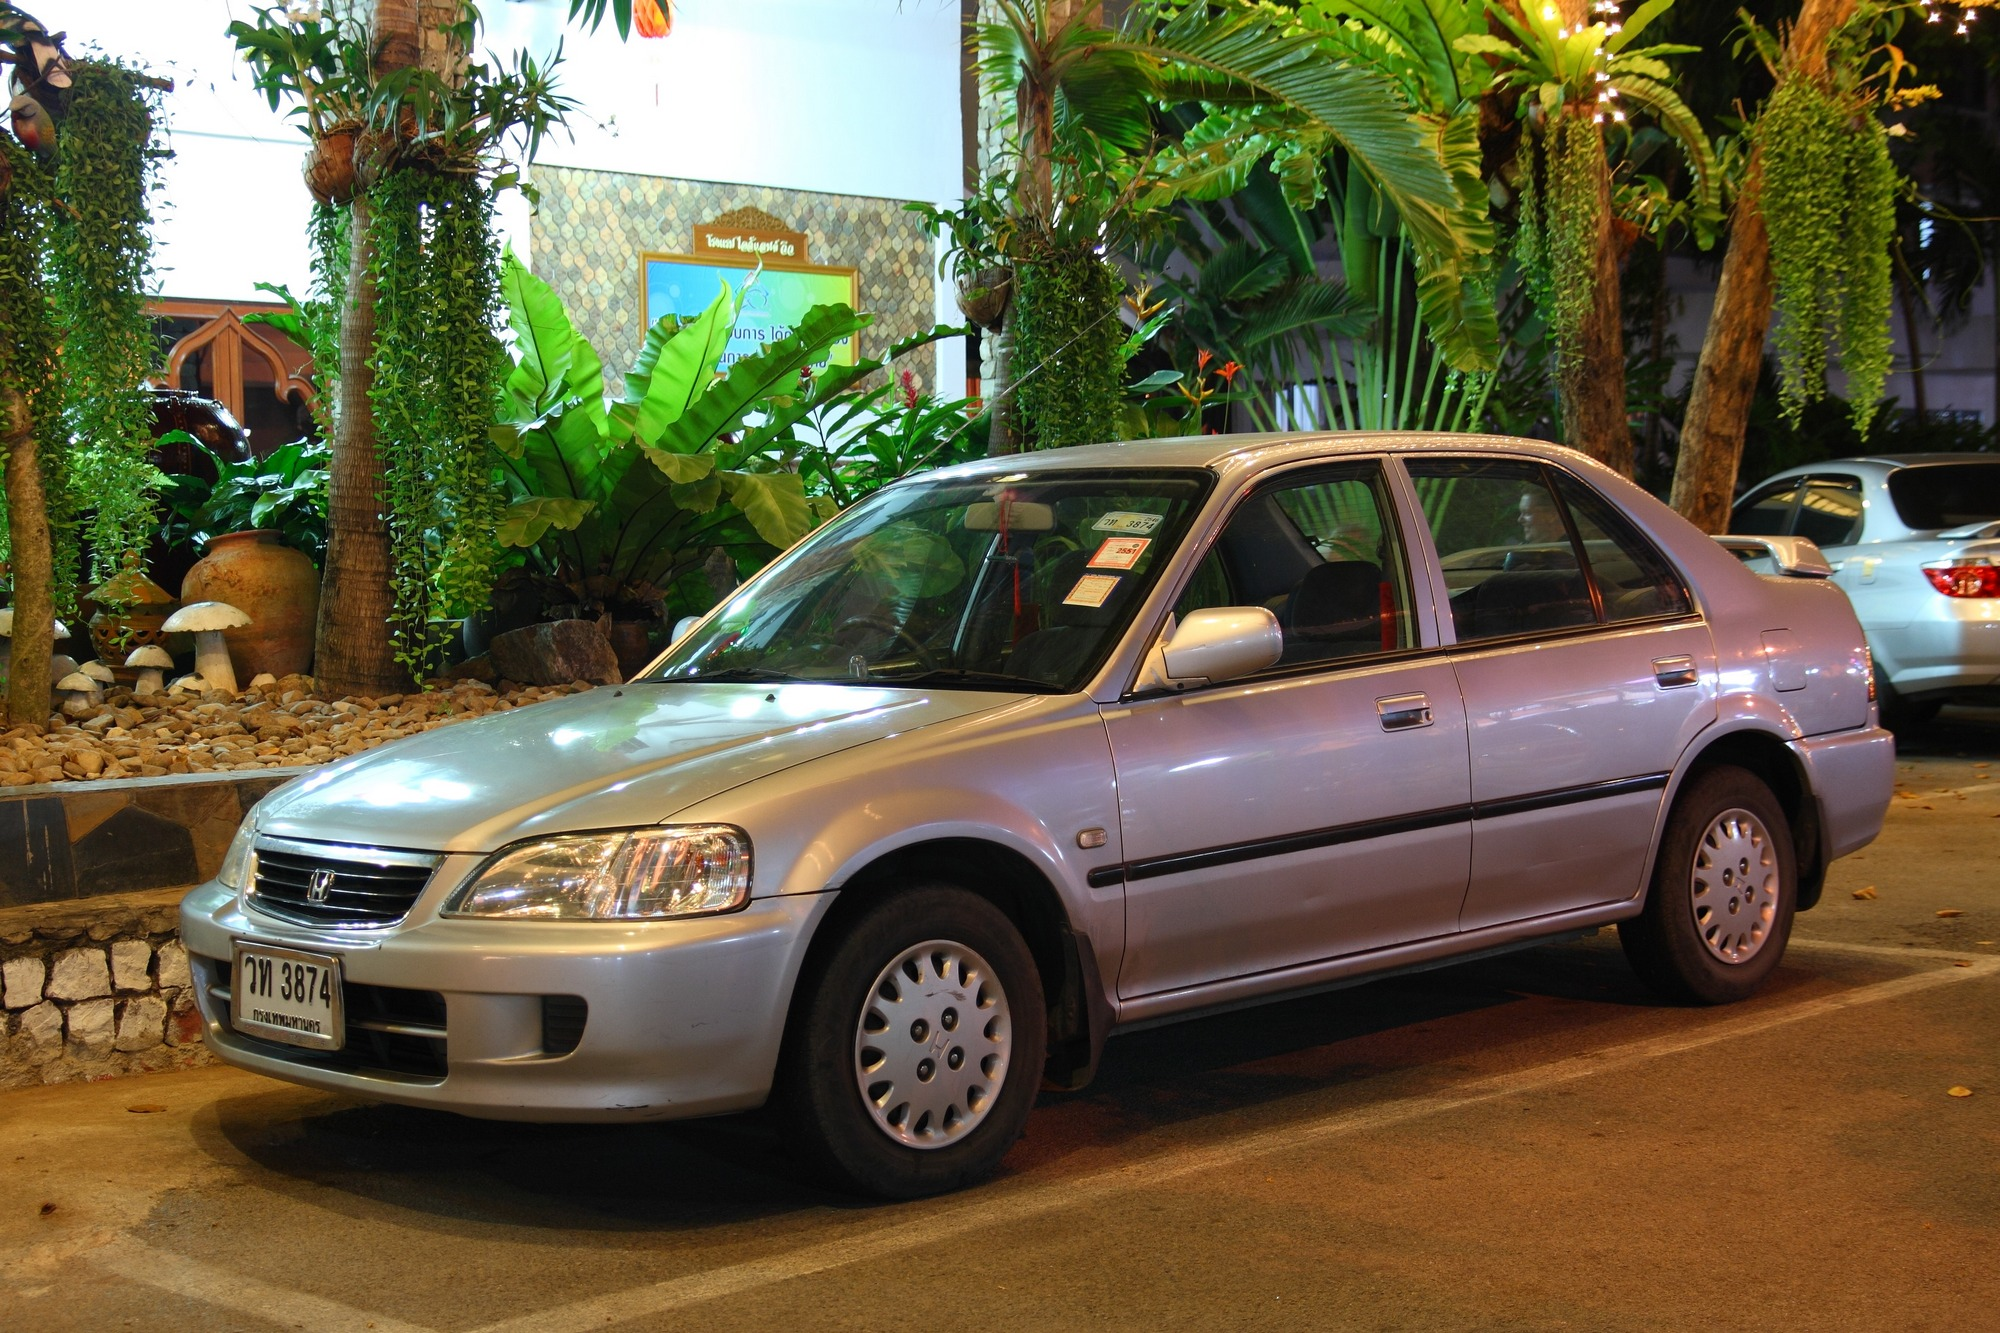 Honda City 2003 Exterior Front Side View